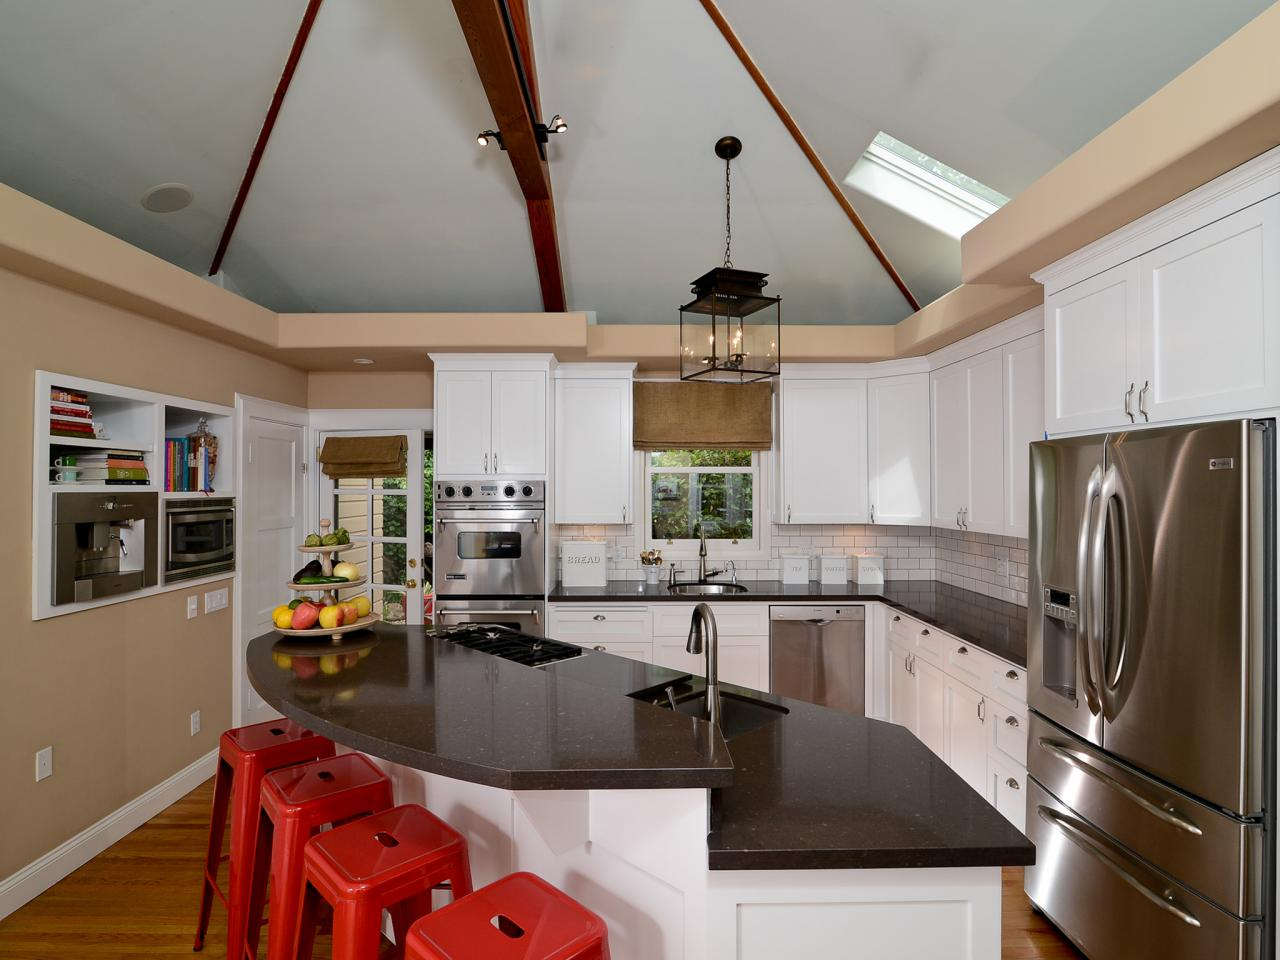 Kitchen With Vaulted Ceilings Painting Kitchen Islands Pictures Ideas Tips From Hgtv Hgtv